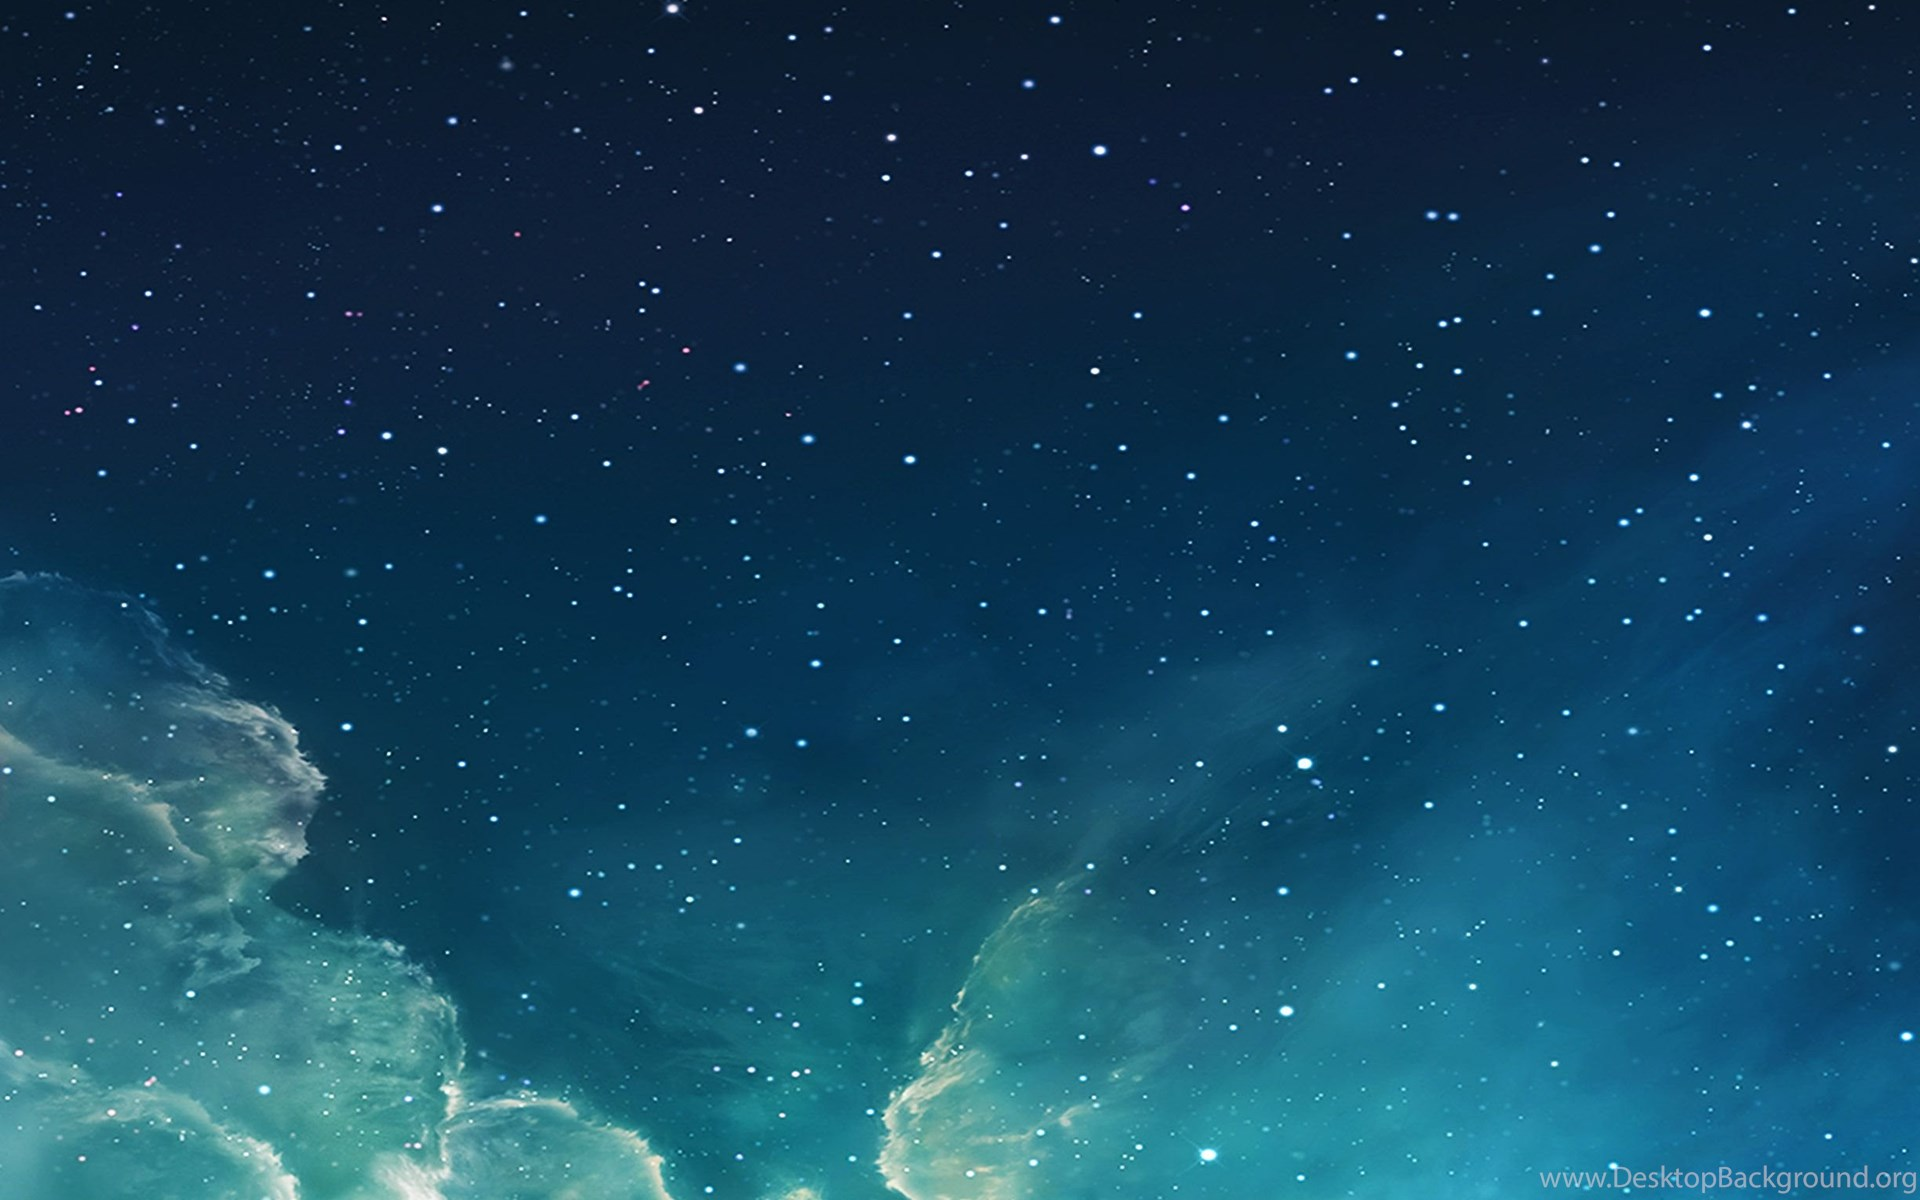 Ios 7 Galaxy Hd Wallpapers Jpg Desktop Background